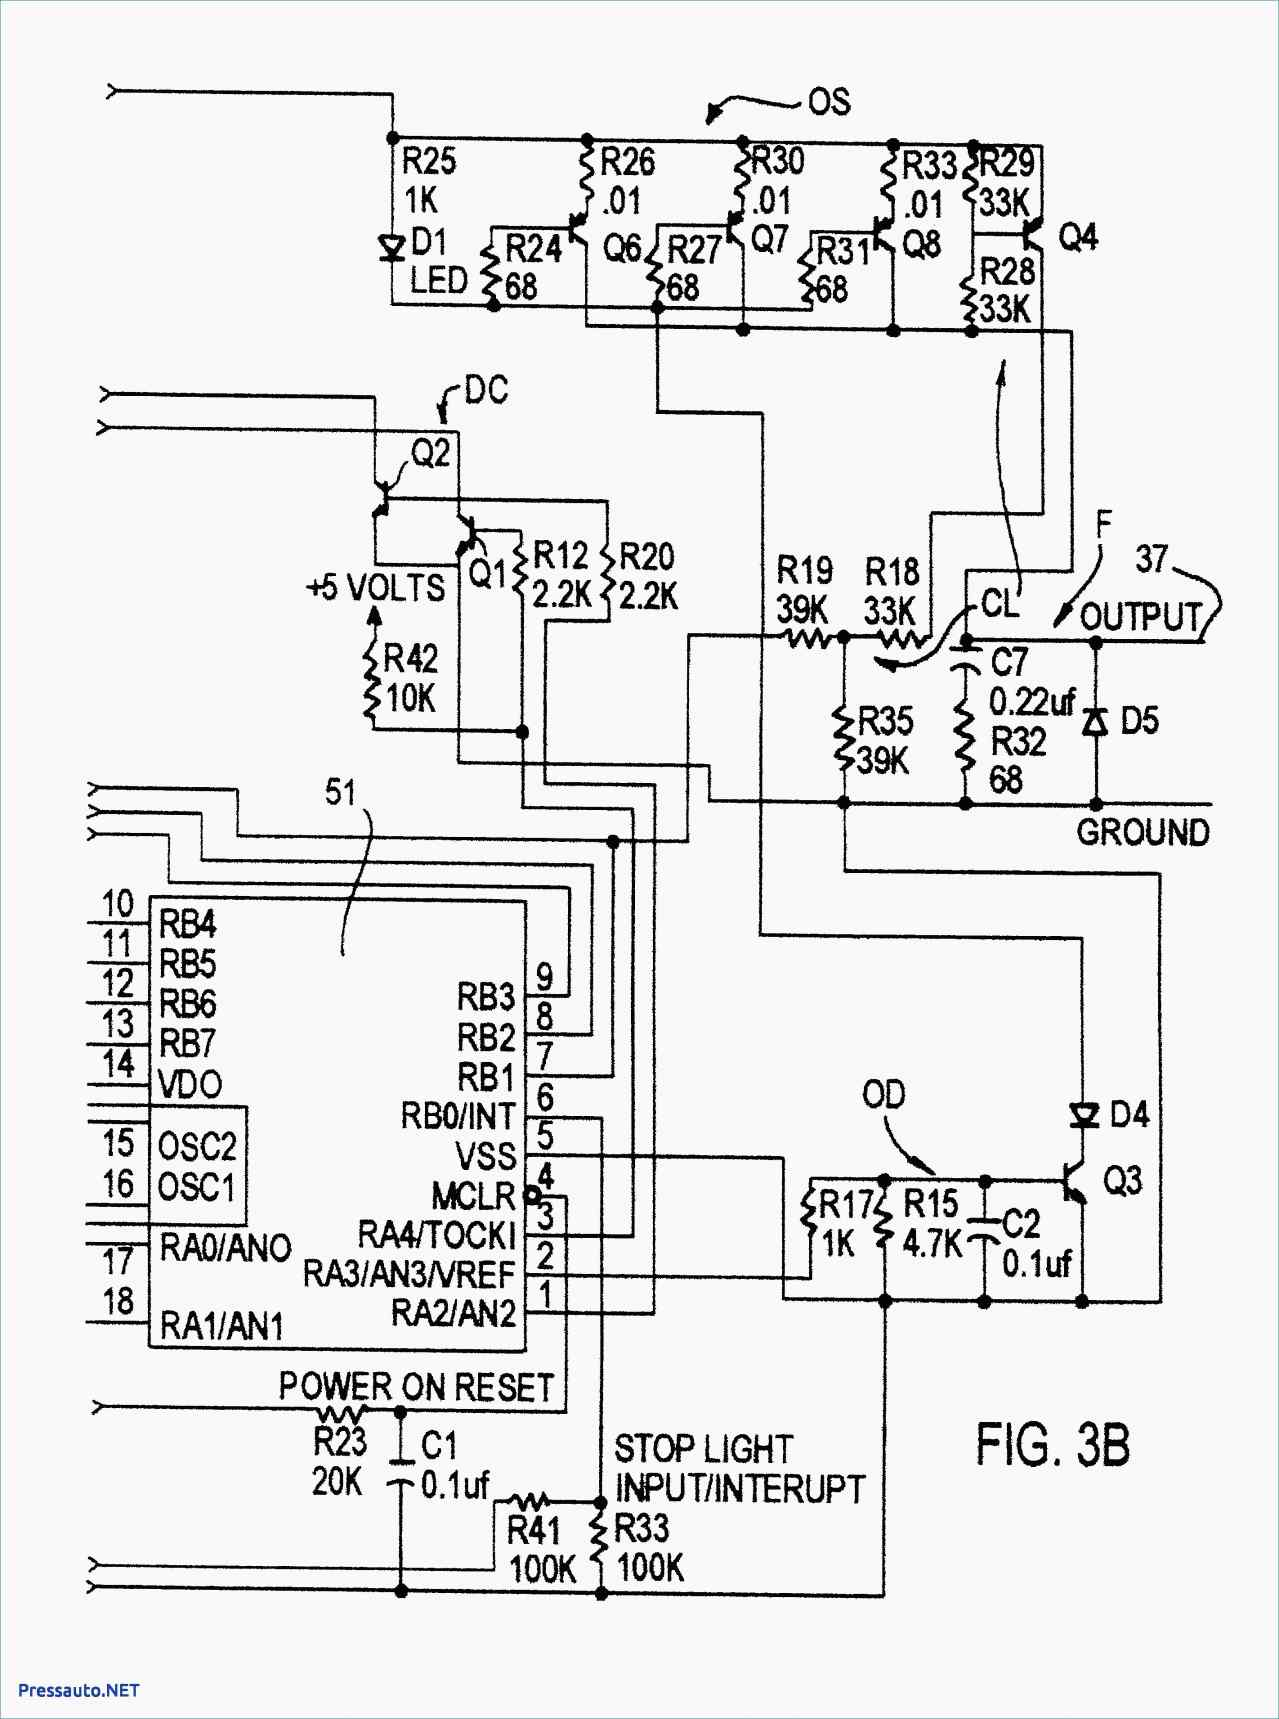 Foot Echo Schematic Drawing At Free For Personal Wire Diagram 1279x1719 Rv Slide Out Switch Wiring Inspirational